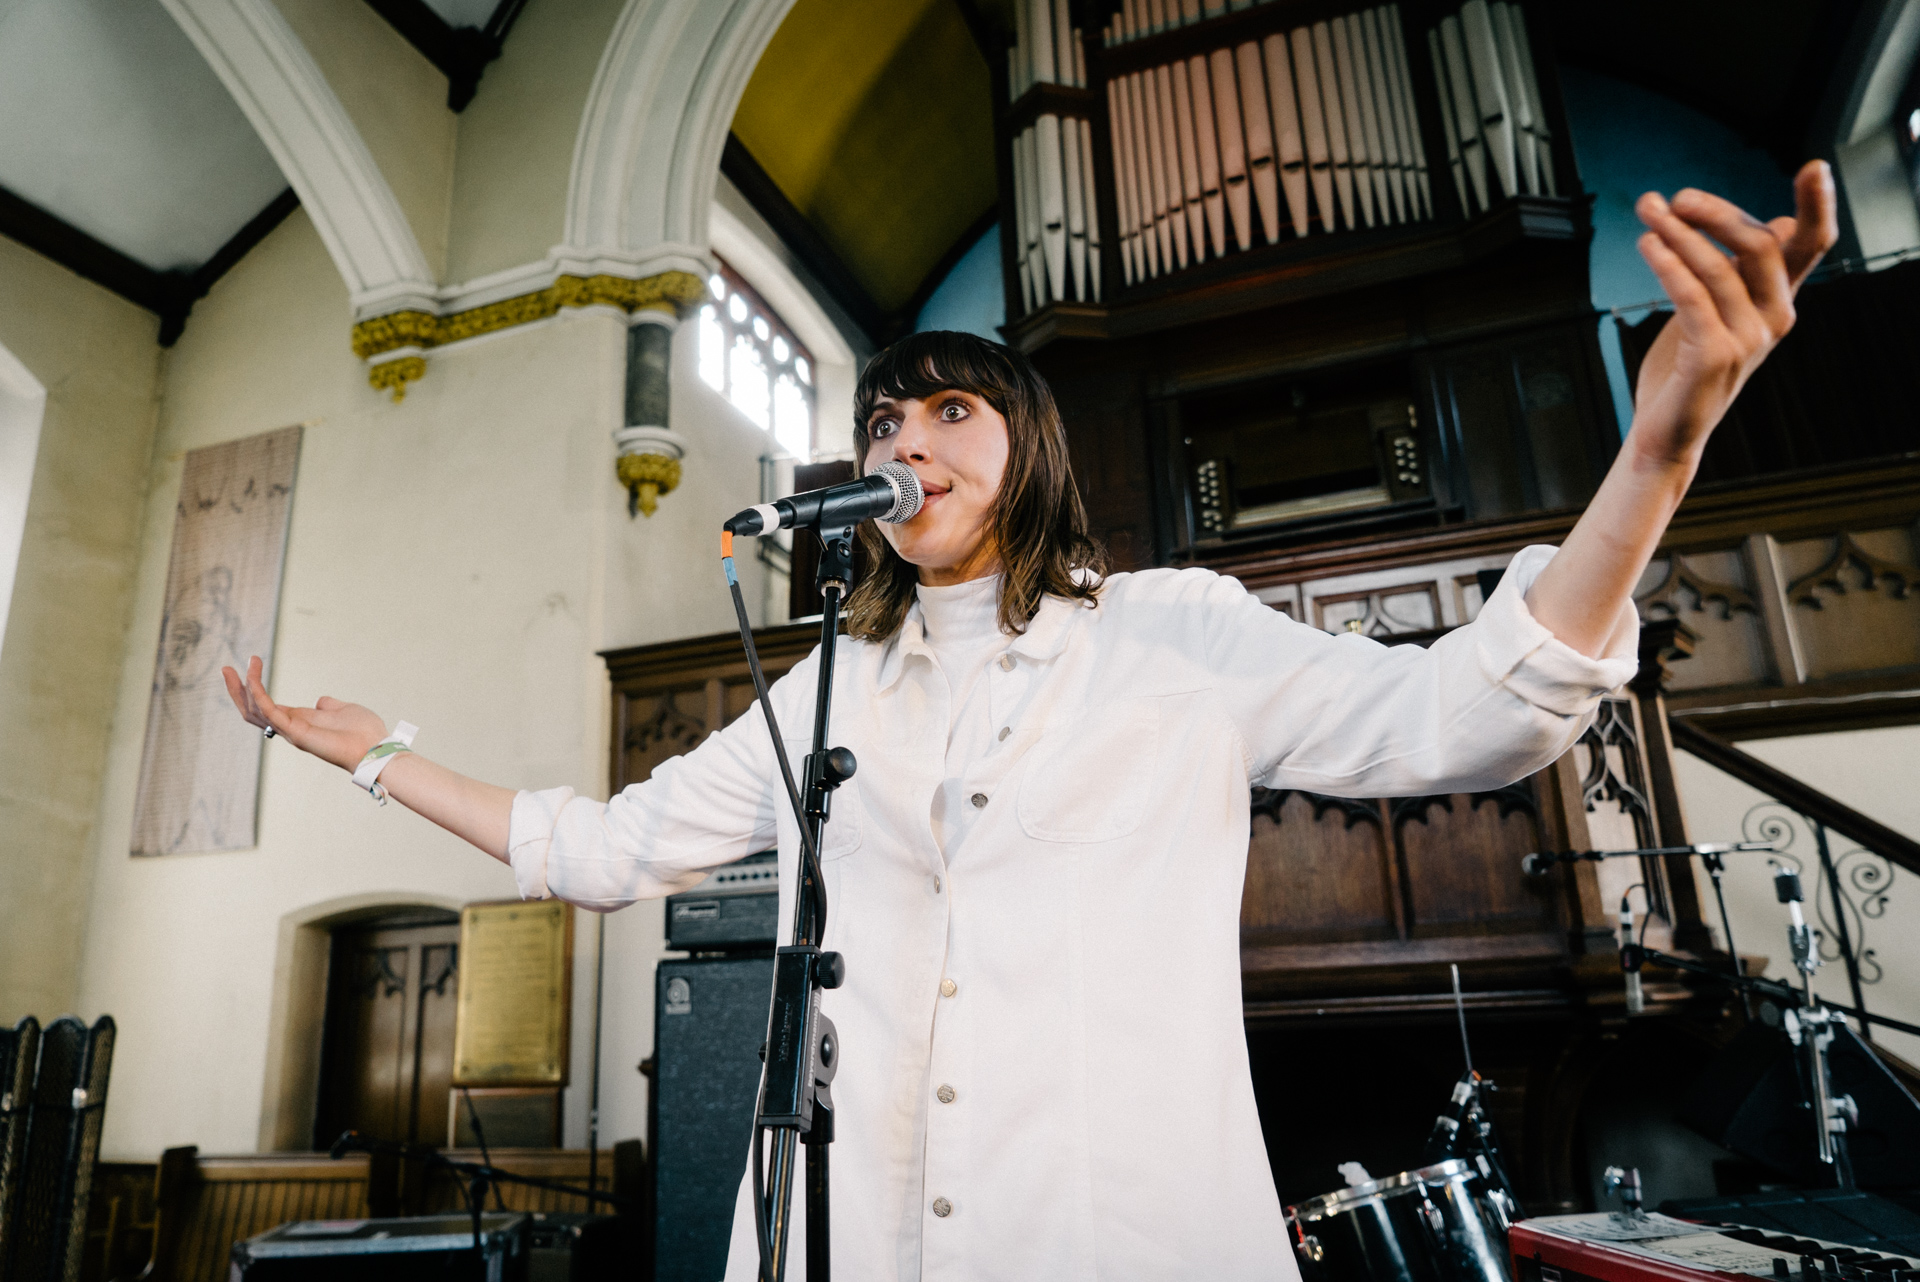 The Great Escape 2017 Day 2: Aldous Harding